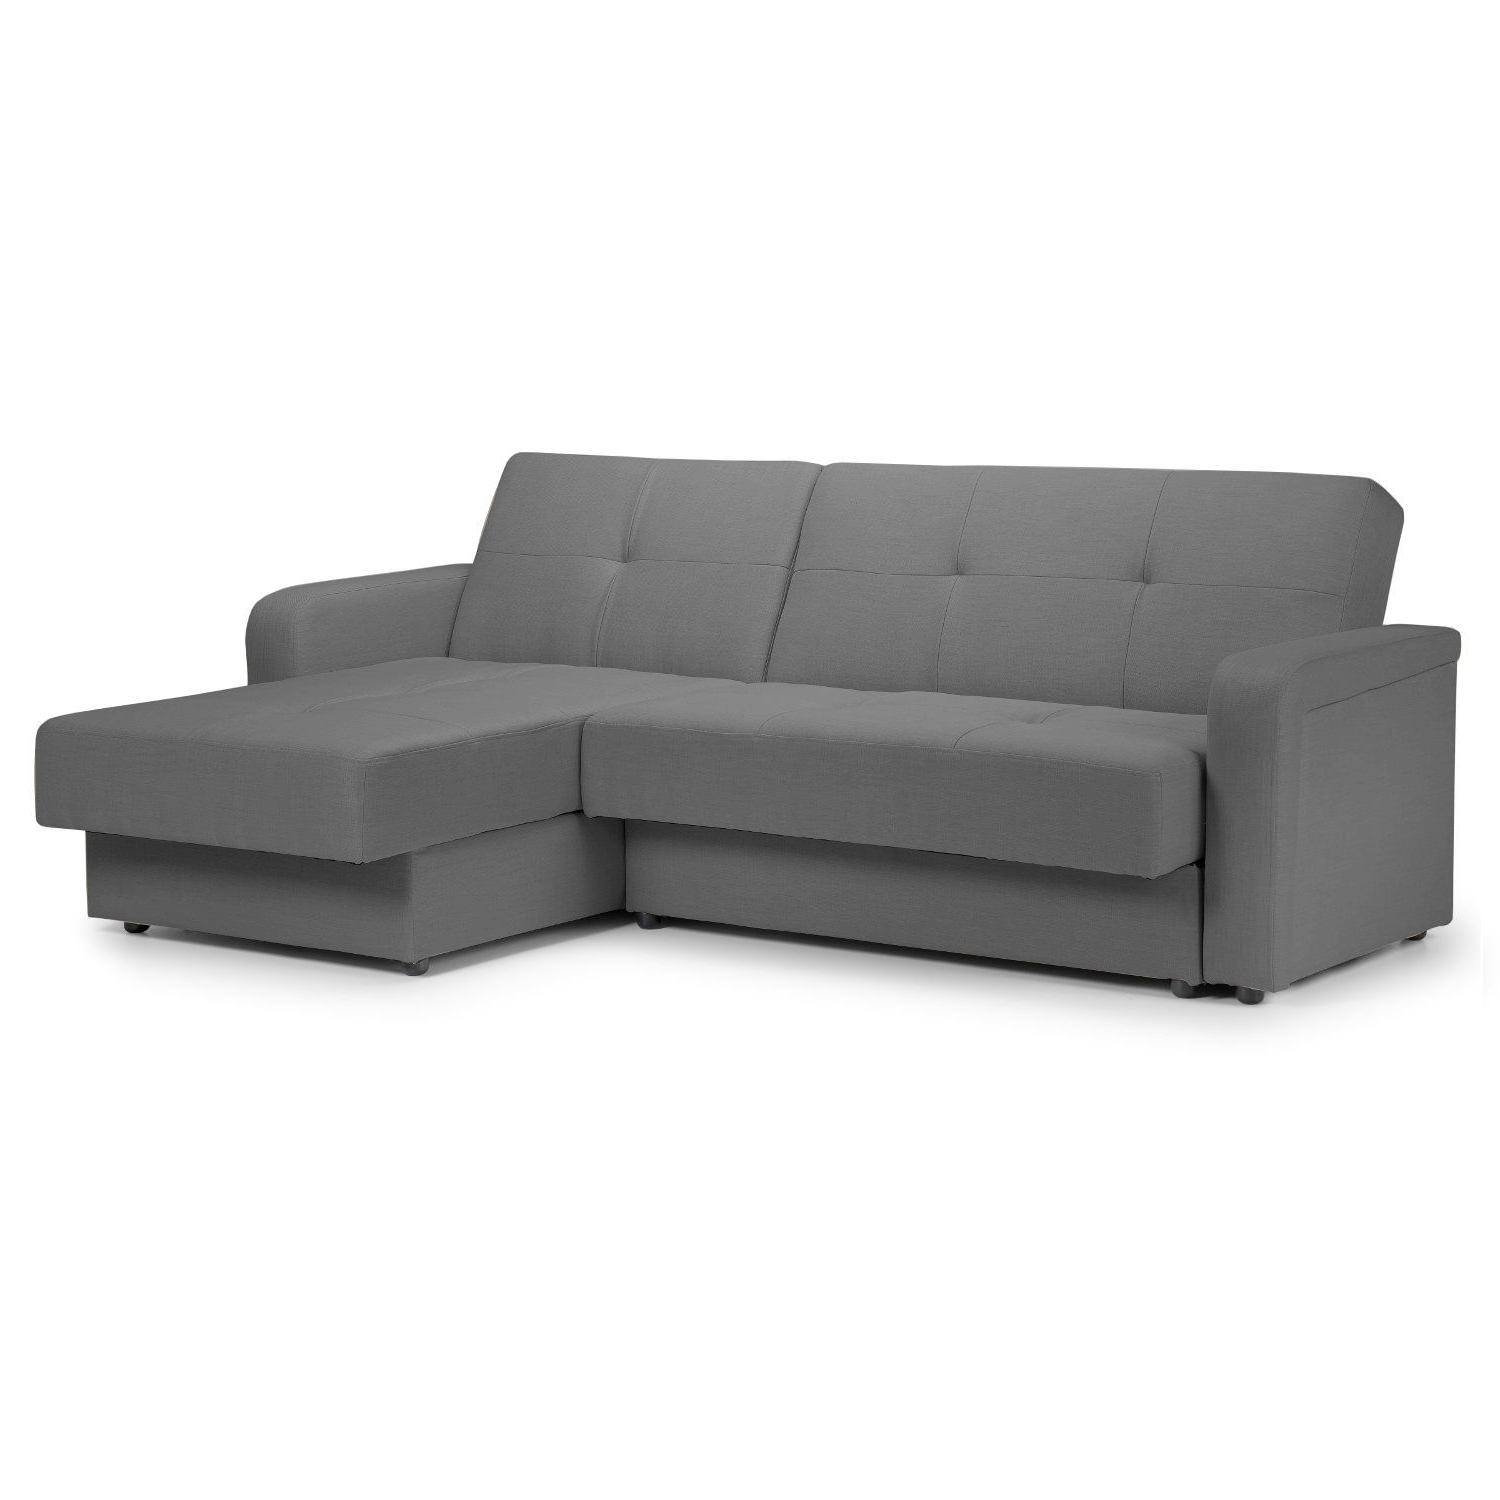 Popular Corner Sofa Beds With Chaise With Florida Fabric Corner Chaise Sofa Bed – Next Day Delivery Florida (View 9 of 15)